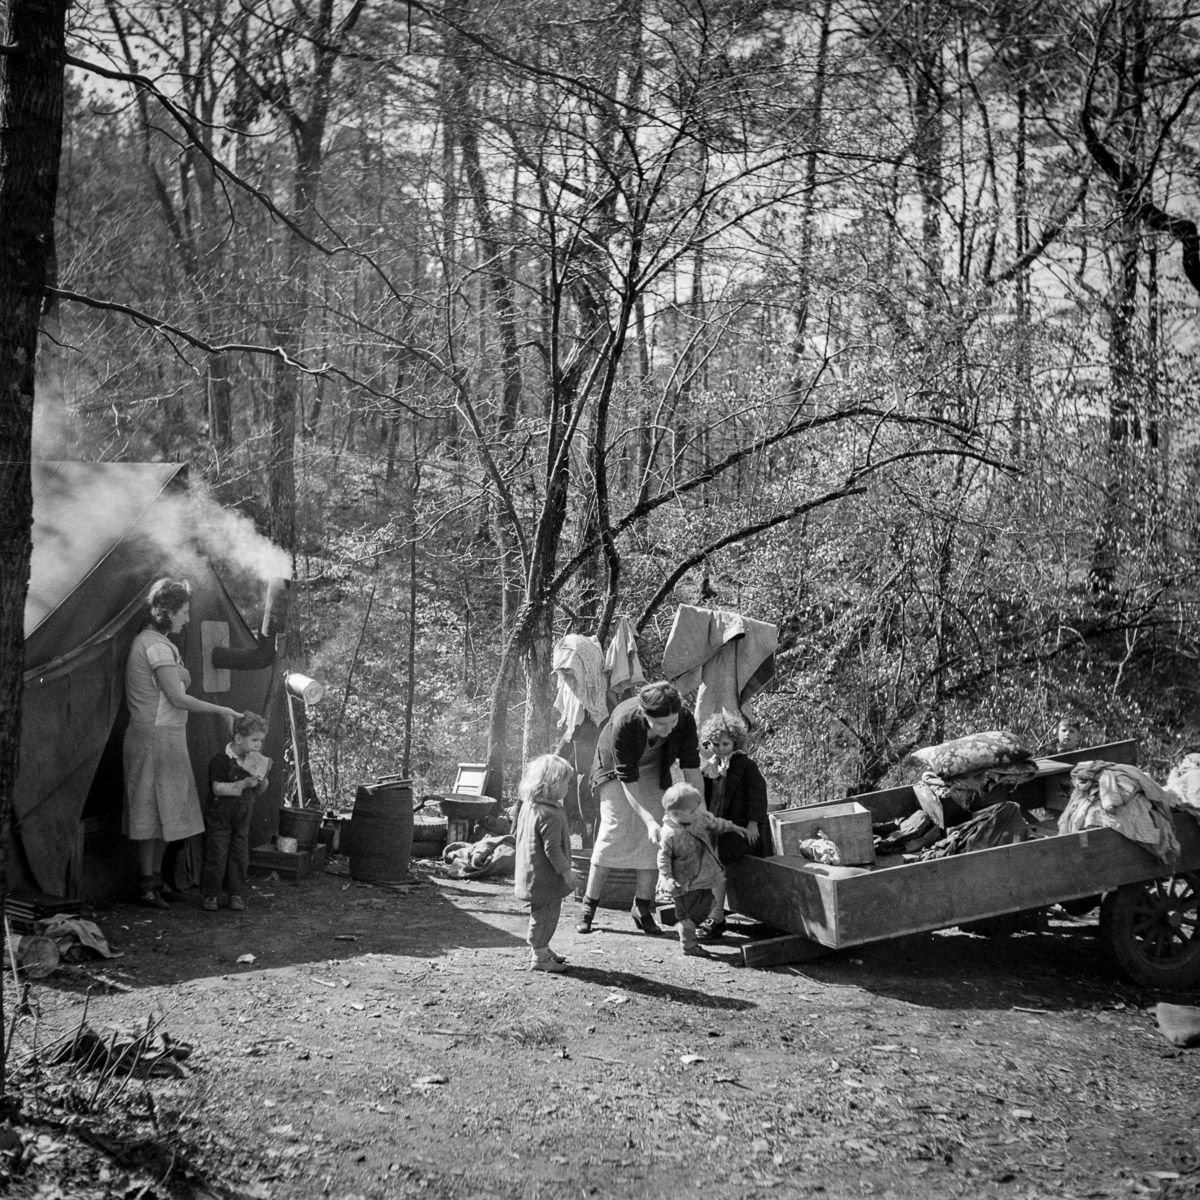 February 1937 A migrant encampment in Birmingham, Alabama